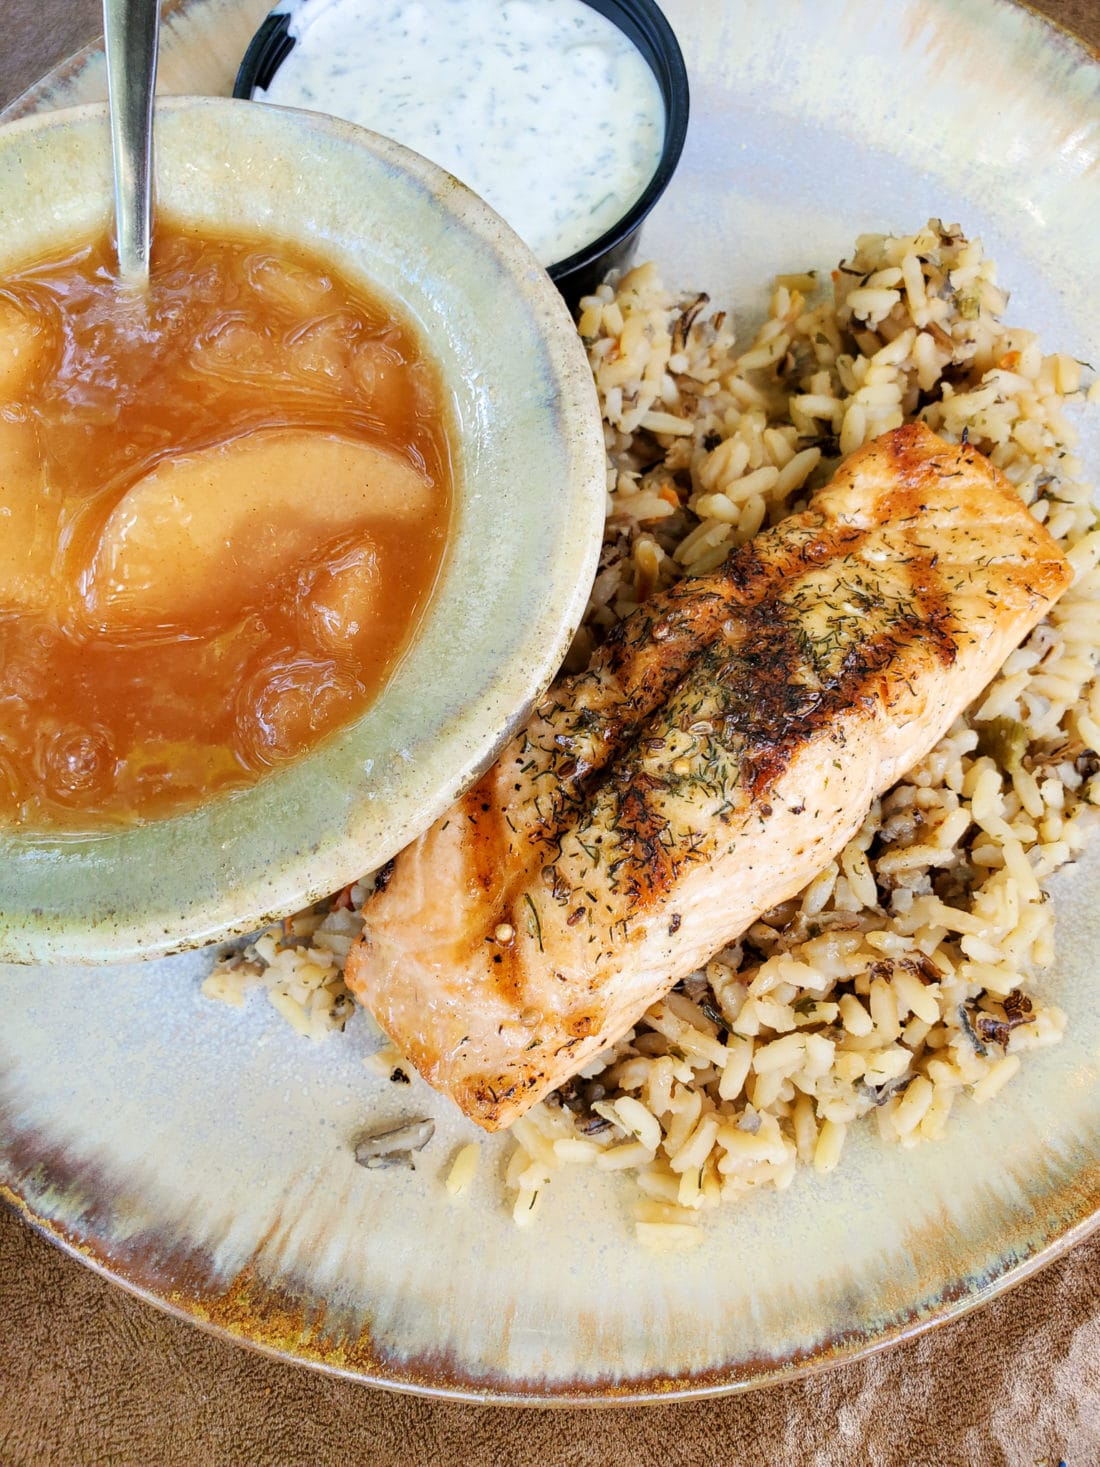 Pottery House Cafe Salmon and Rice. The Pottery House Cafe serves freshly made sandwiches, salads, and hearty entrees on dishes created by our potters right next door. Read my full review which includes photos of this beautiful and delicious location in Pigeon Forge, TN.